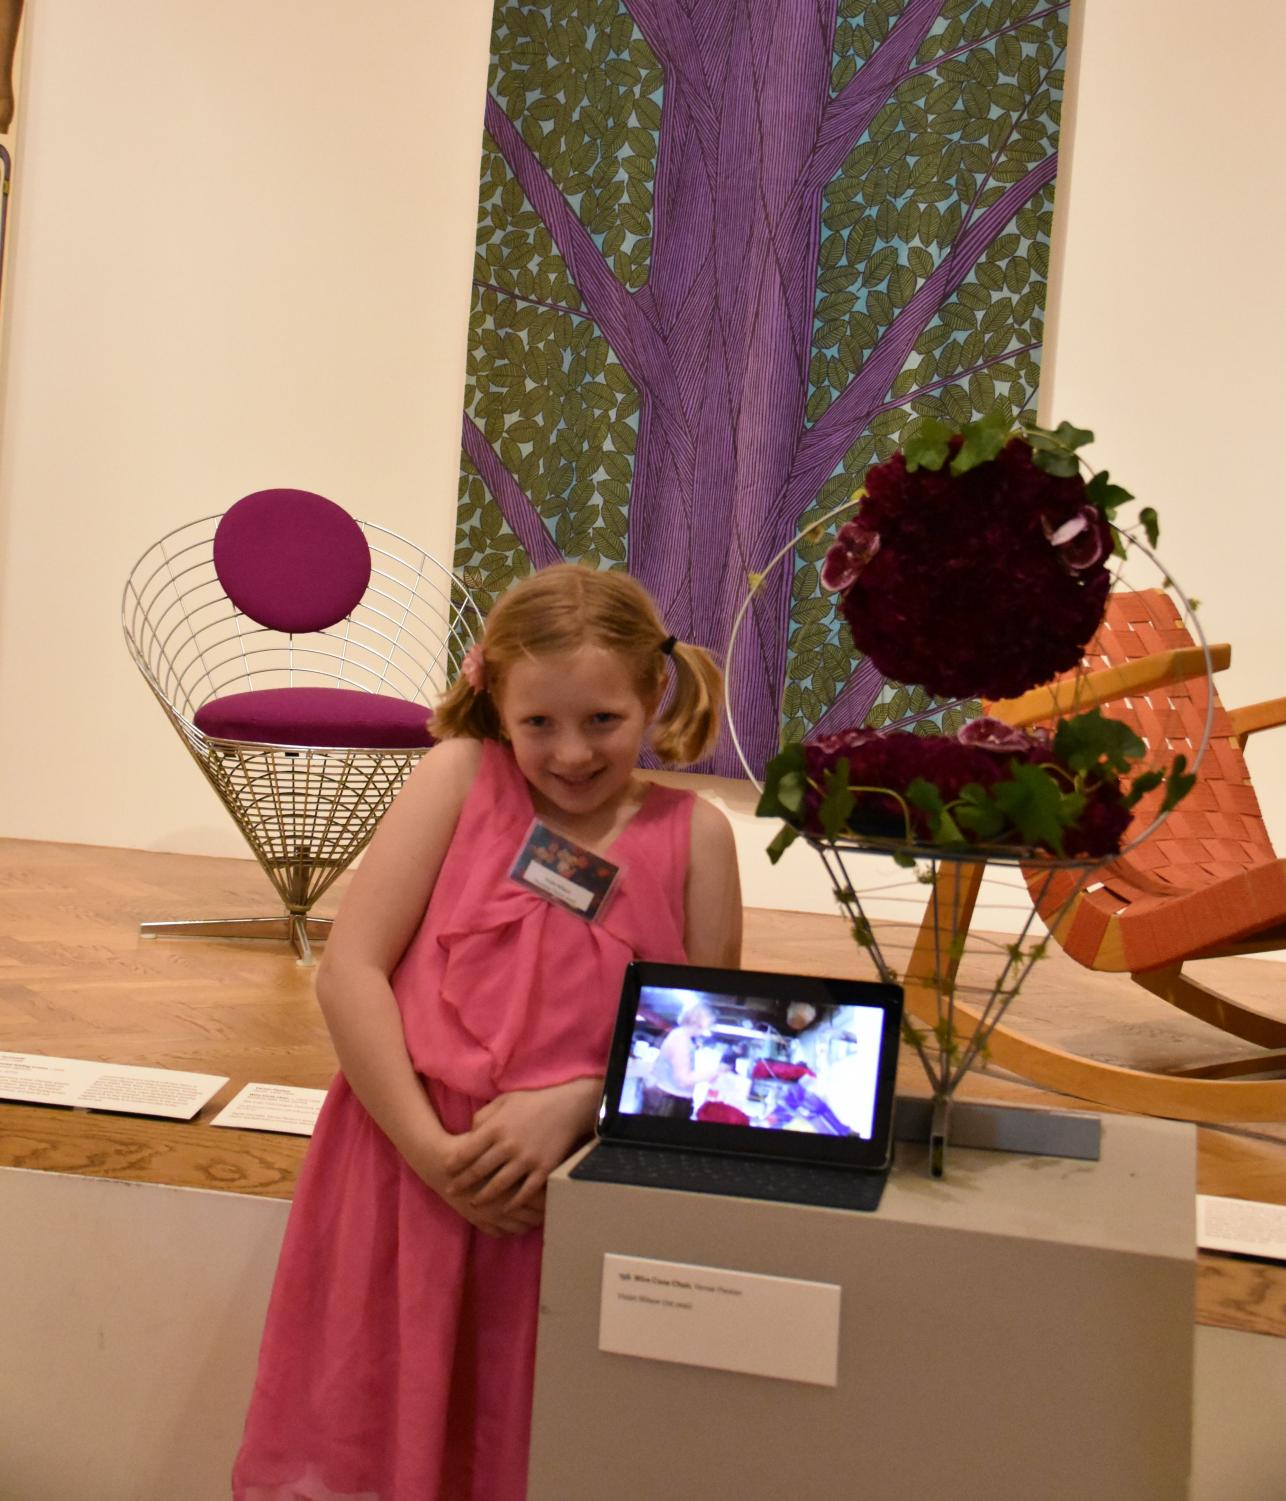 Violet Wilson stands beside her finished piece and the chair that inspired it, showing off the timelapse to prove she did it all by herself.